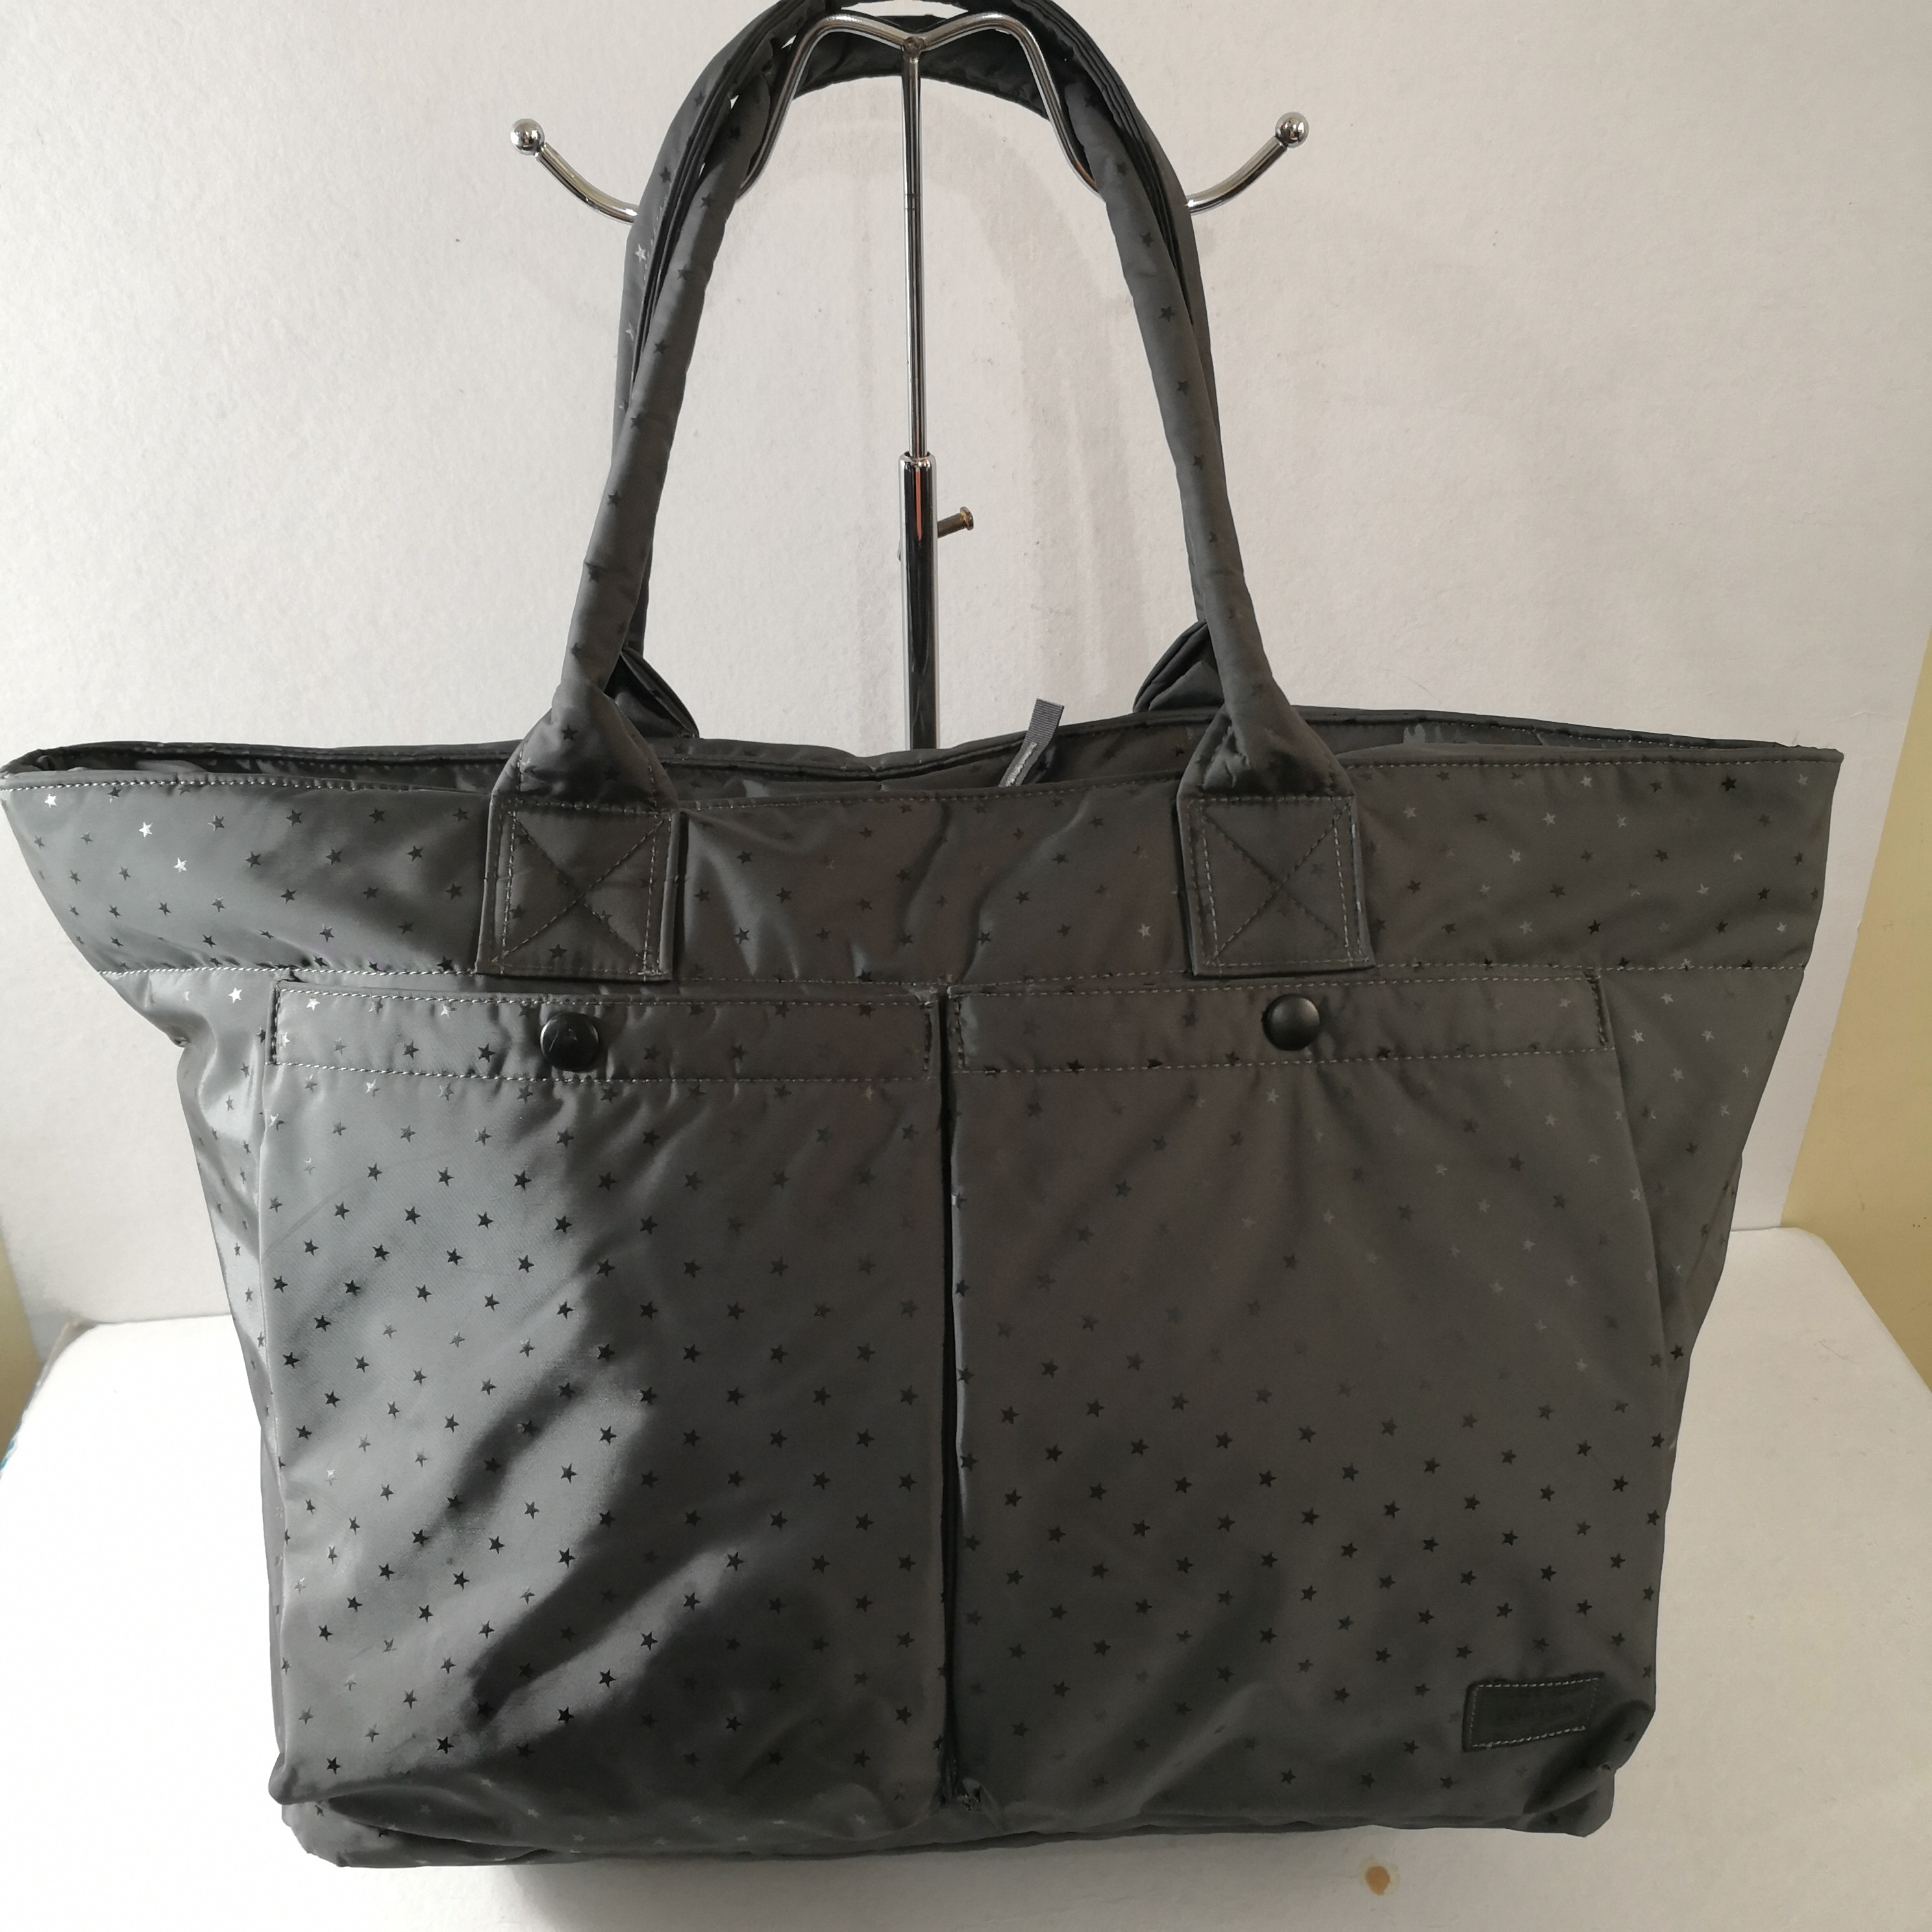 dd94485b7964 Porter Porter Grey Suave by Head Porter Dark Grey Large Nylon Tote Bag Size  one size - Bags   Luggage for Sale - Grailed